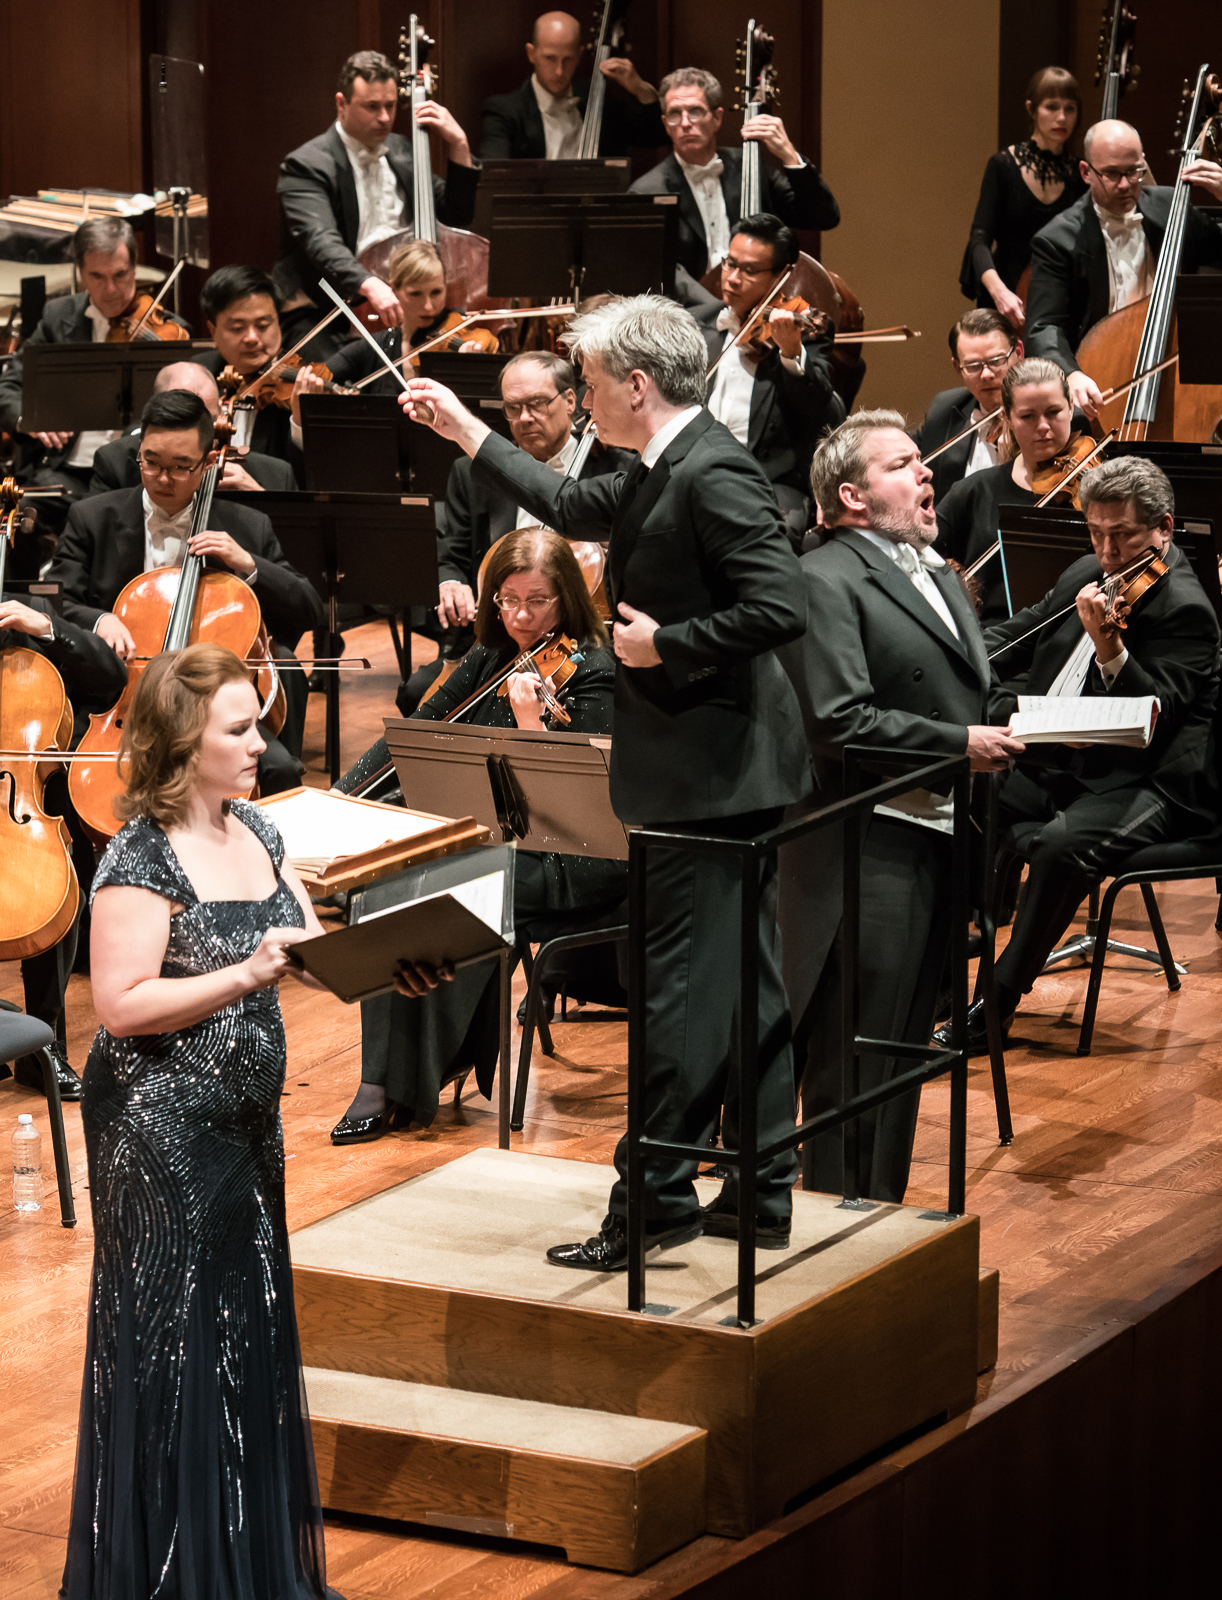 Seatte Symphony plays Elgar's Dream of Gerontius